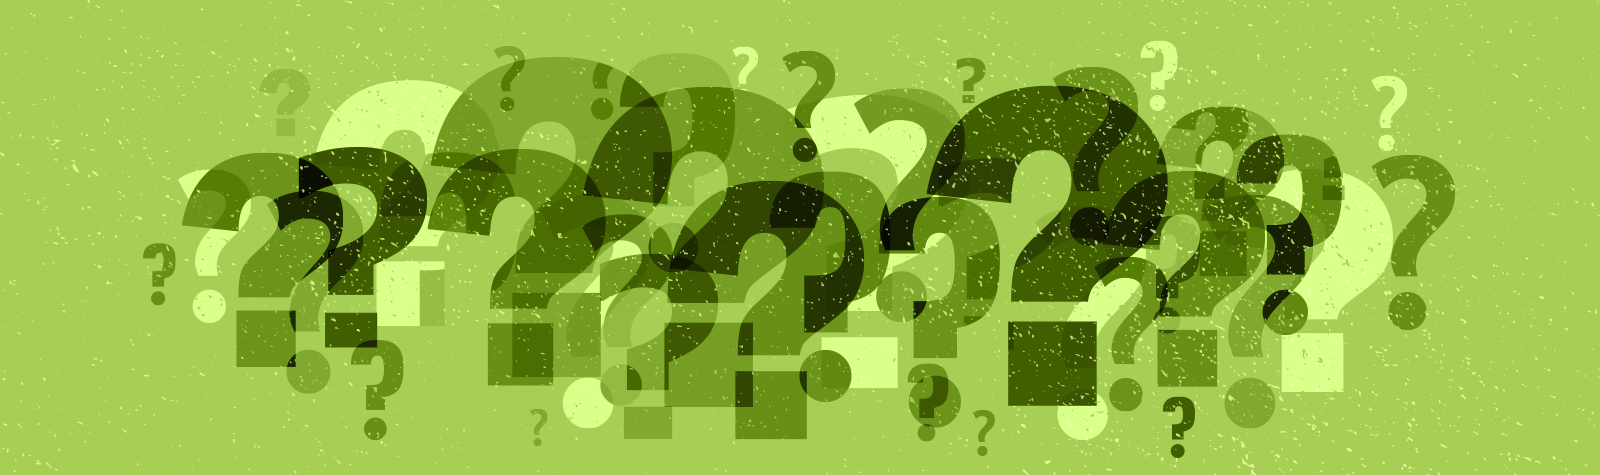 What-Should-You-Ask-Before-You-Hire-an-Inbound-Marketing-Agency (1).png